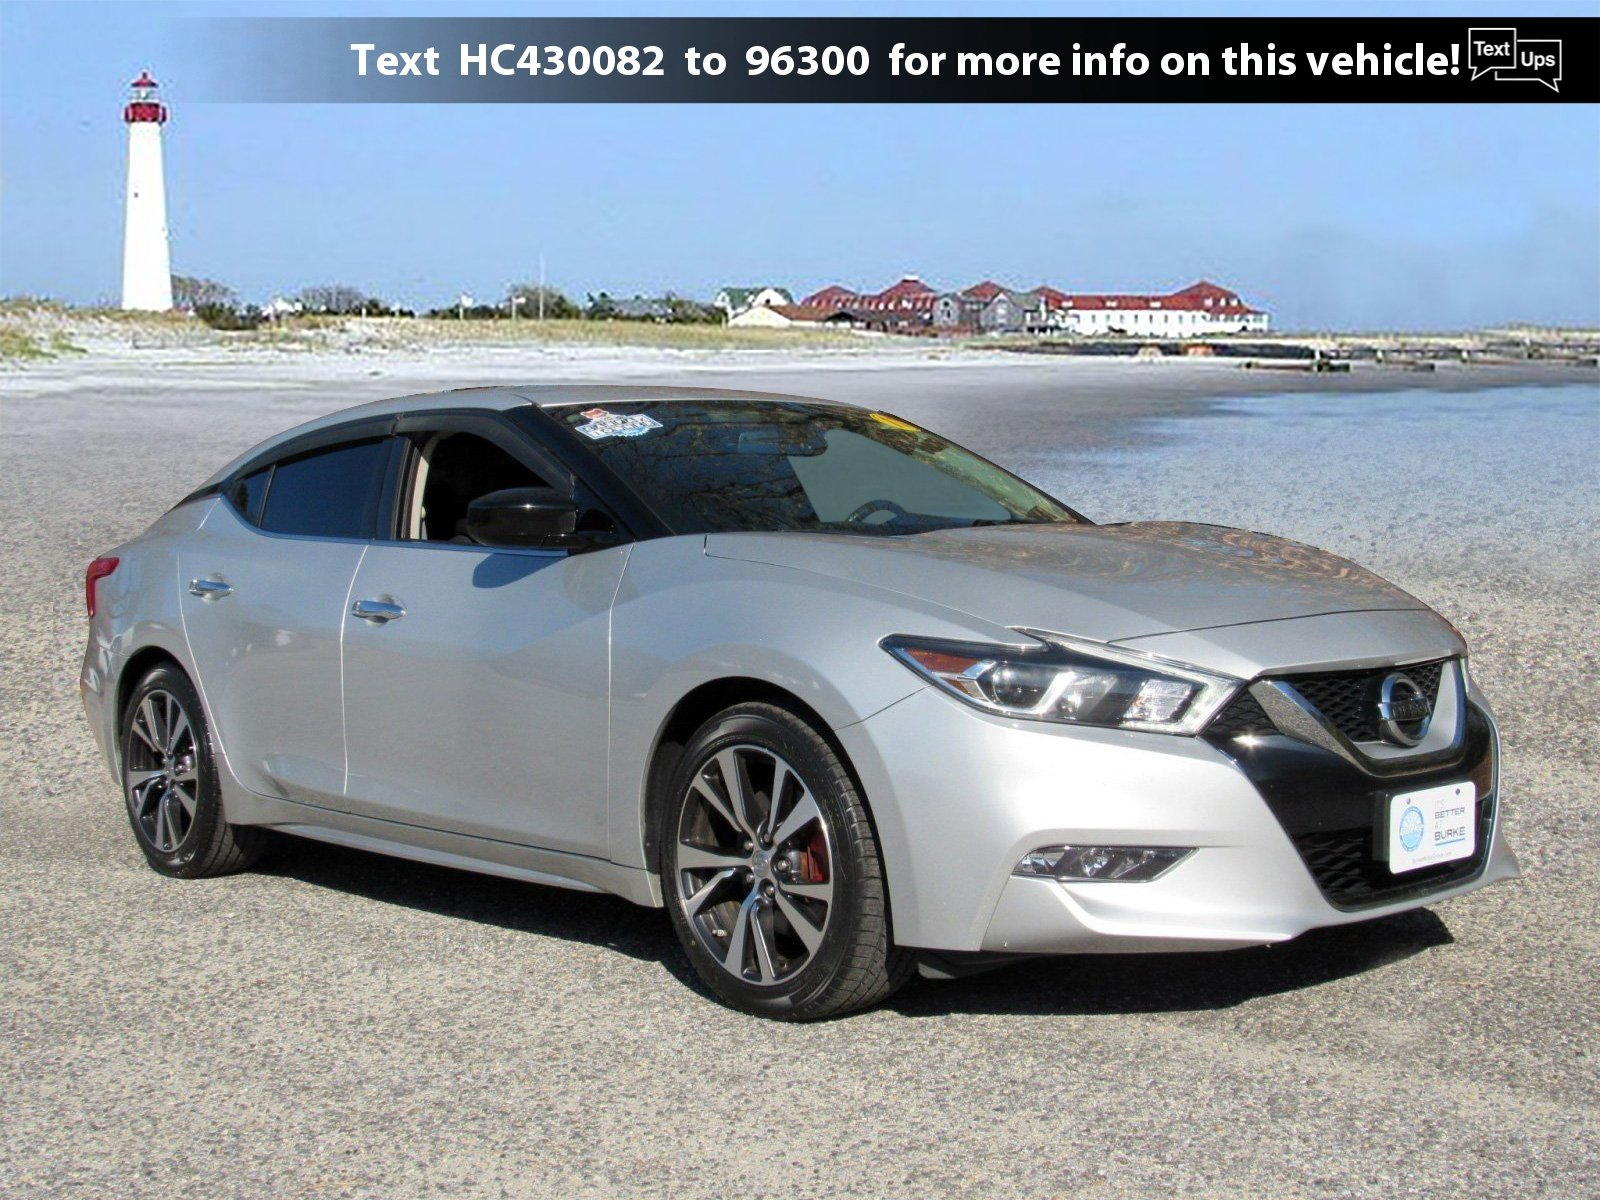 Pre-Owned 2017 Nissan Maxima S S 3.5L for Sale in Cape May Court House